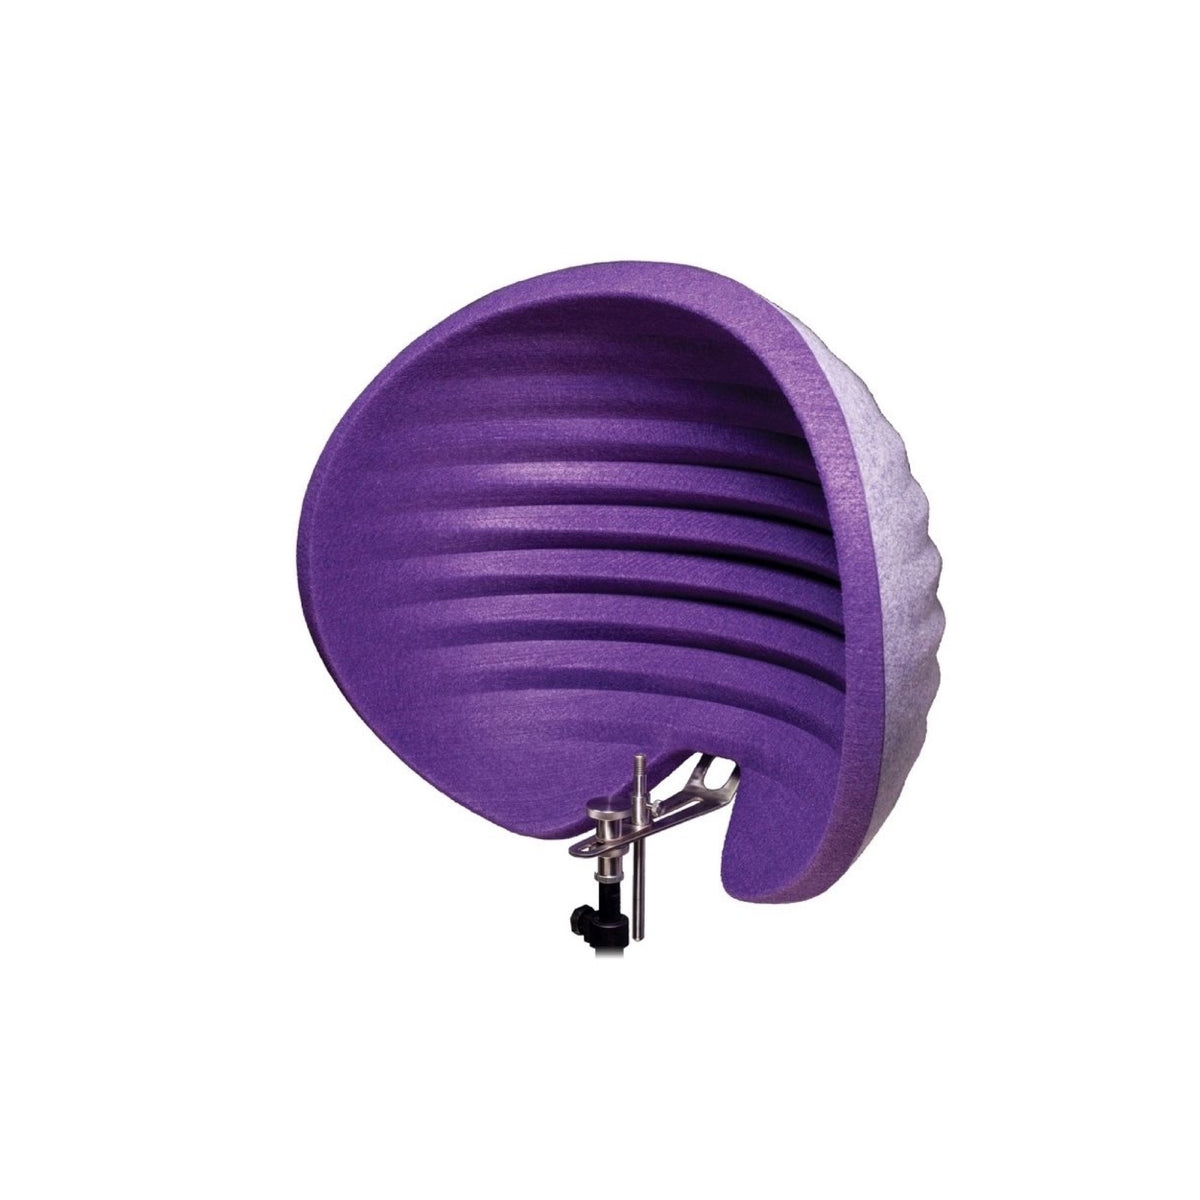 Aston Microphones Halo Microphone Reflection Filter, Purple